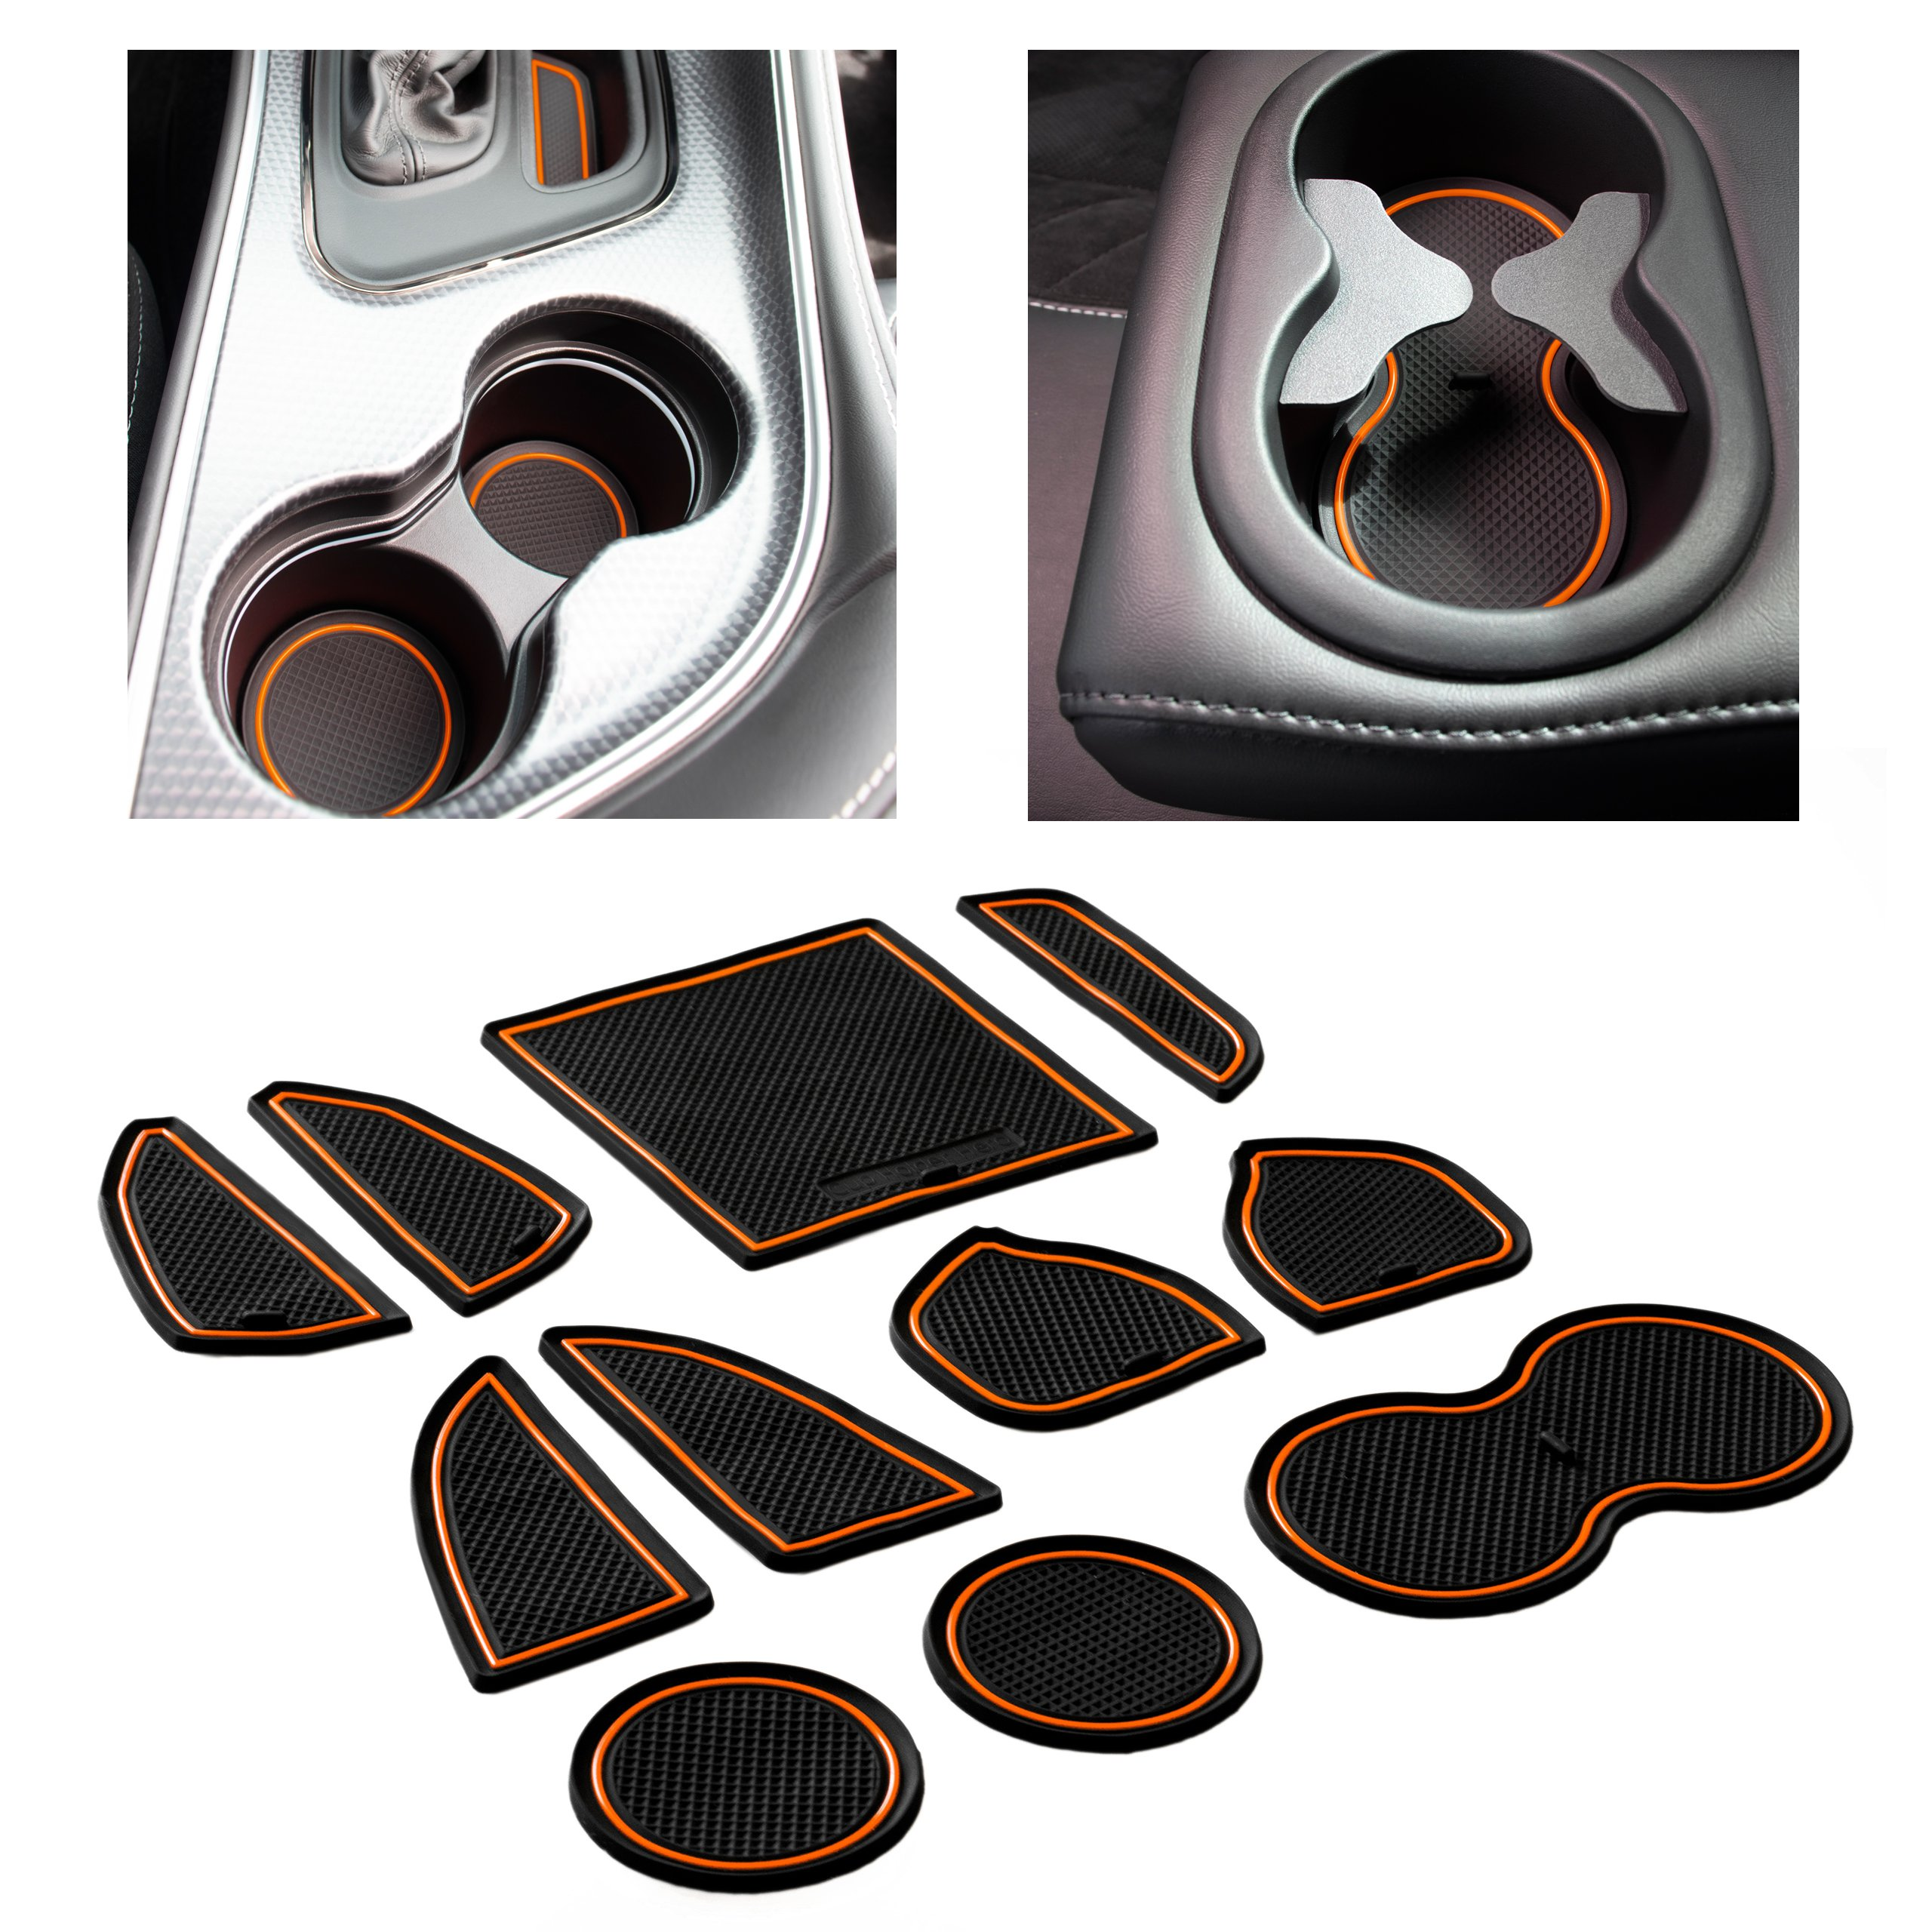 CupHolderHero-Dodge-Challenger-2015-2021-Liners-Accessories thumbnail 19